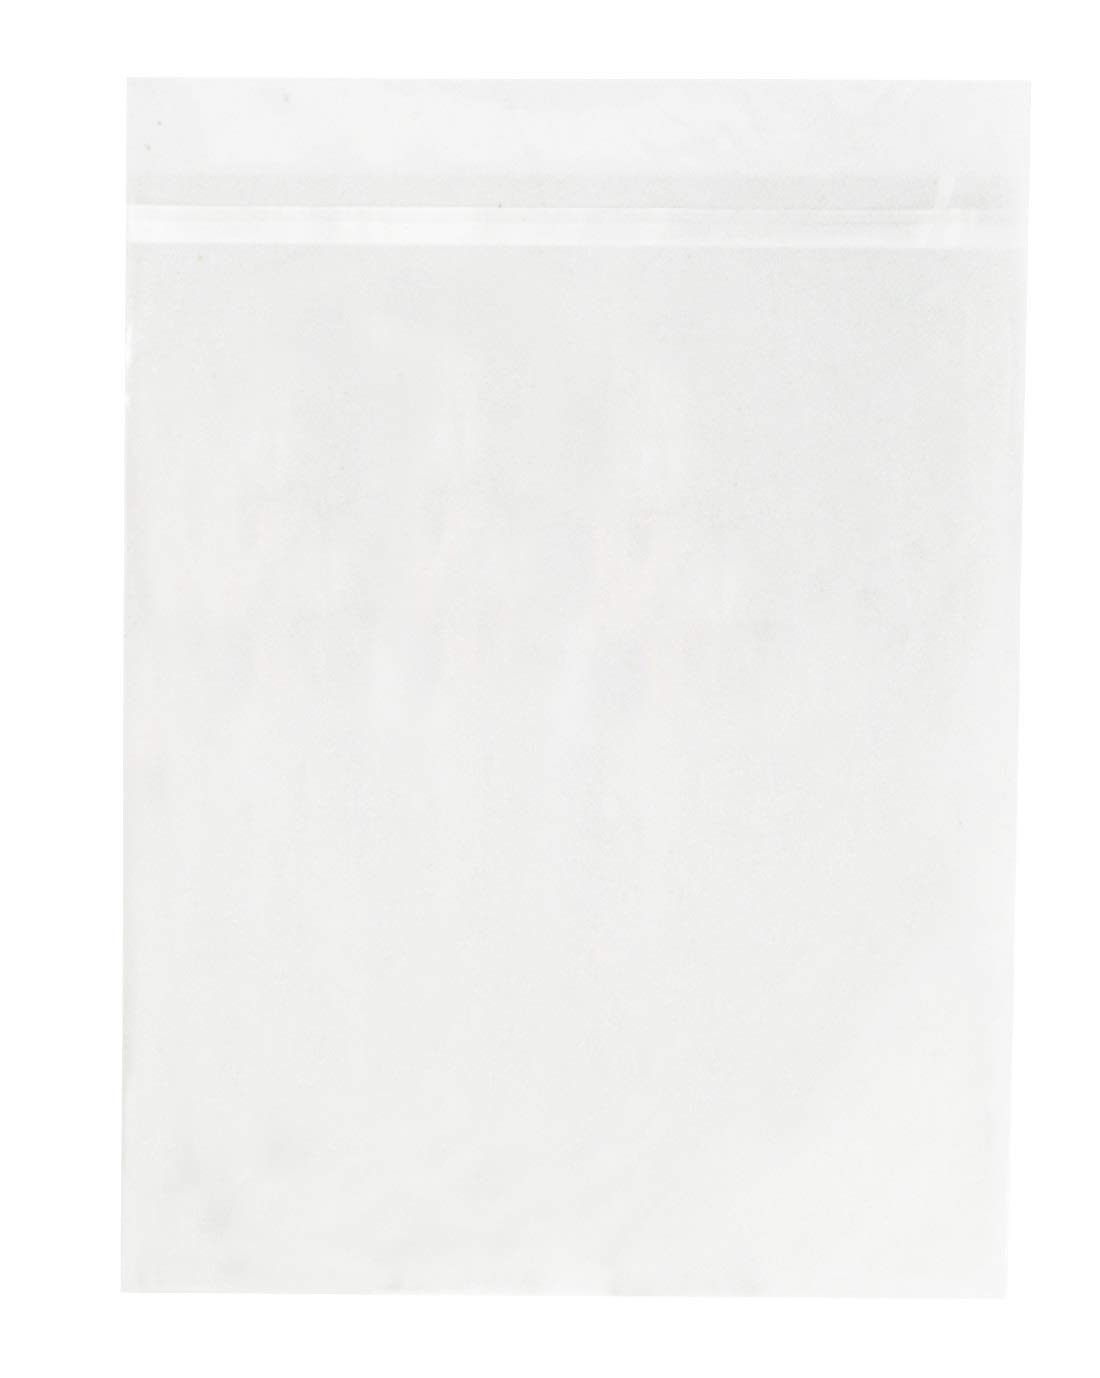 Golden State Art, Pack of 50 11 1/4 x 14 1/8 Clear Bags for 11x14 Mat Matting by Golden State Art